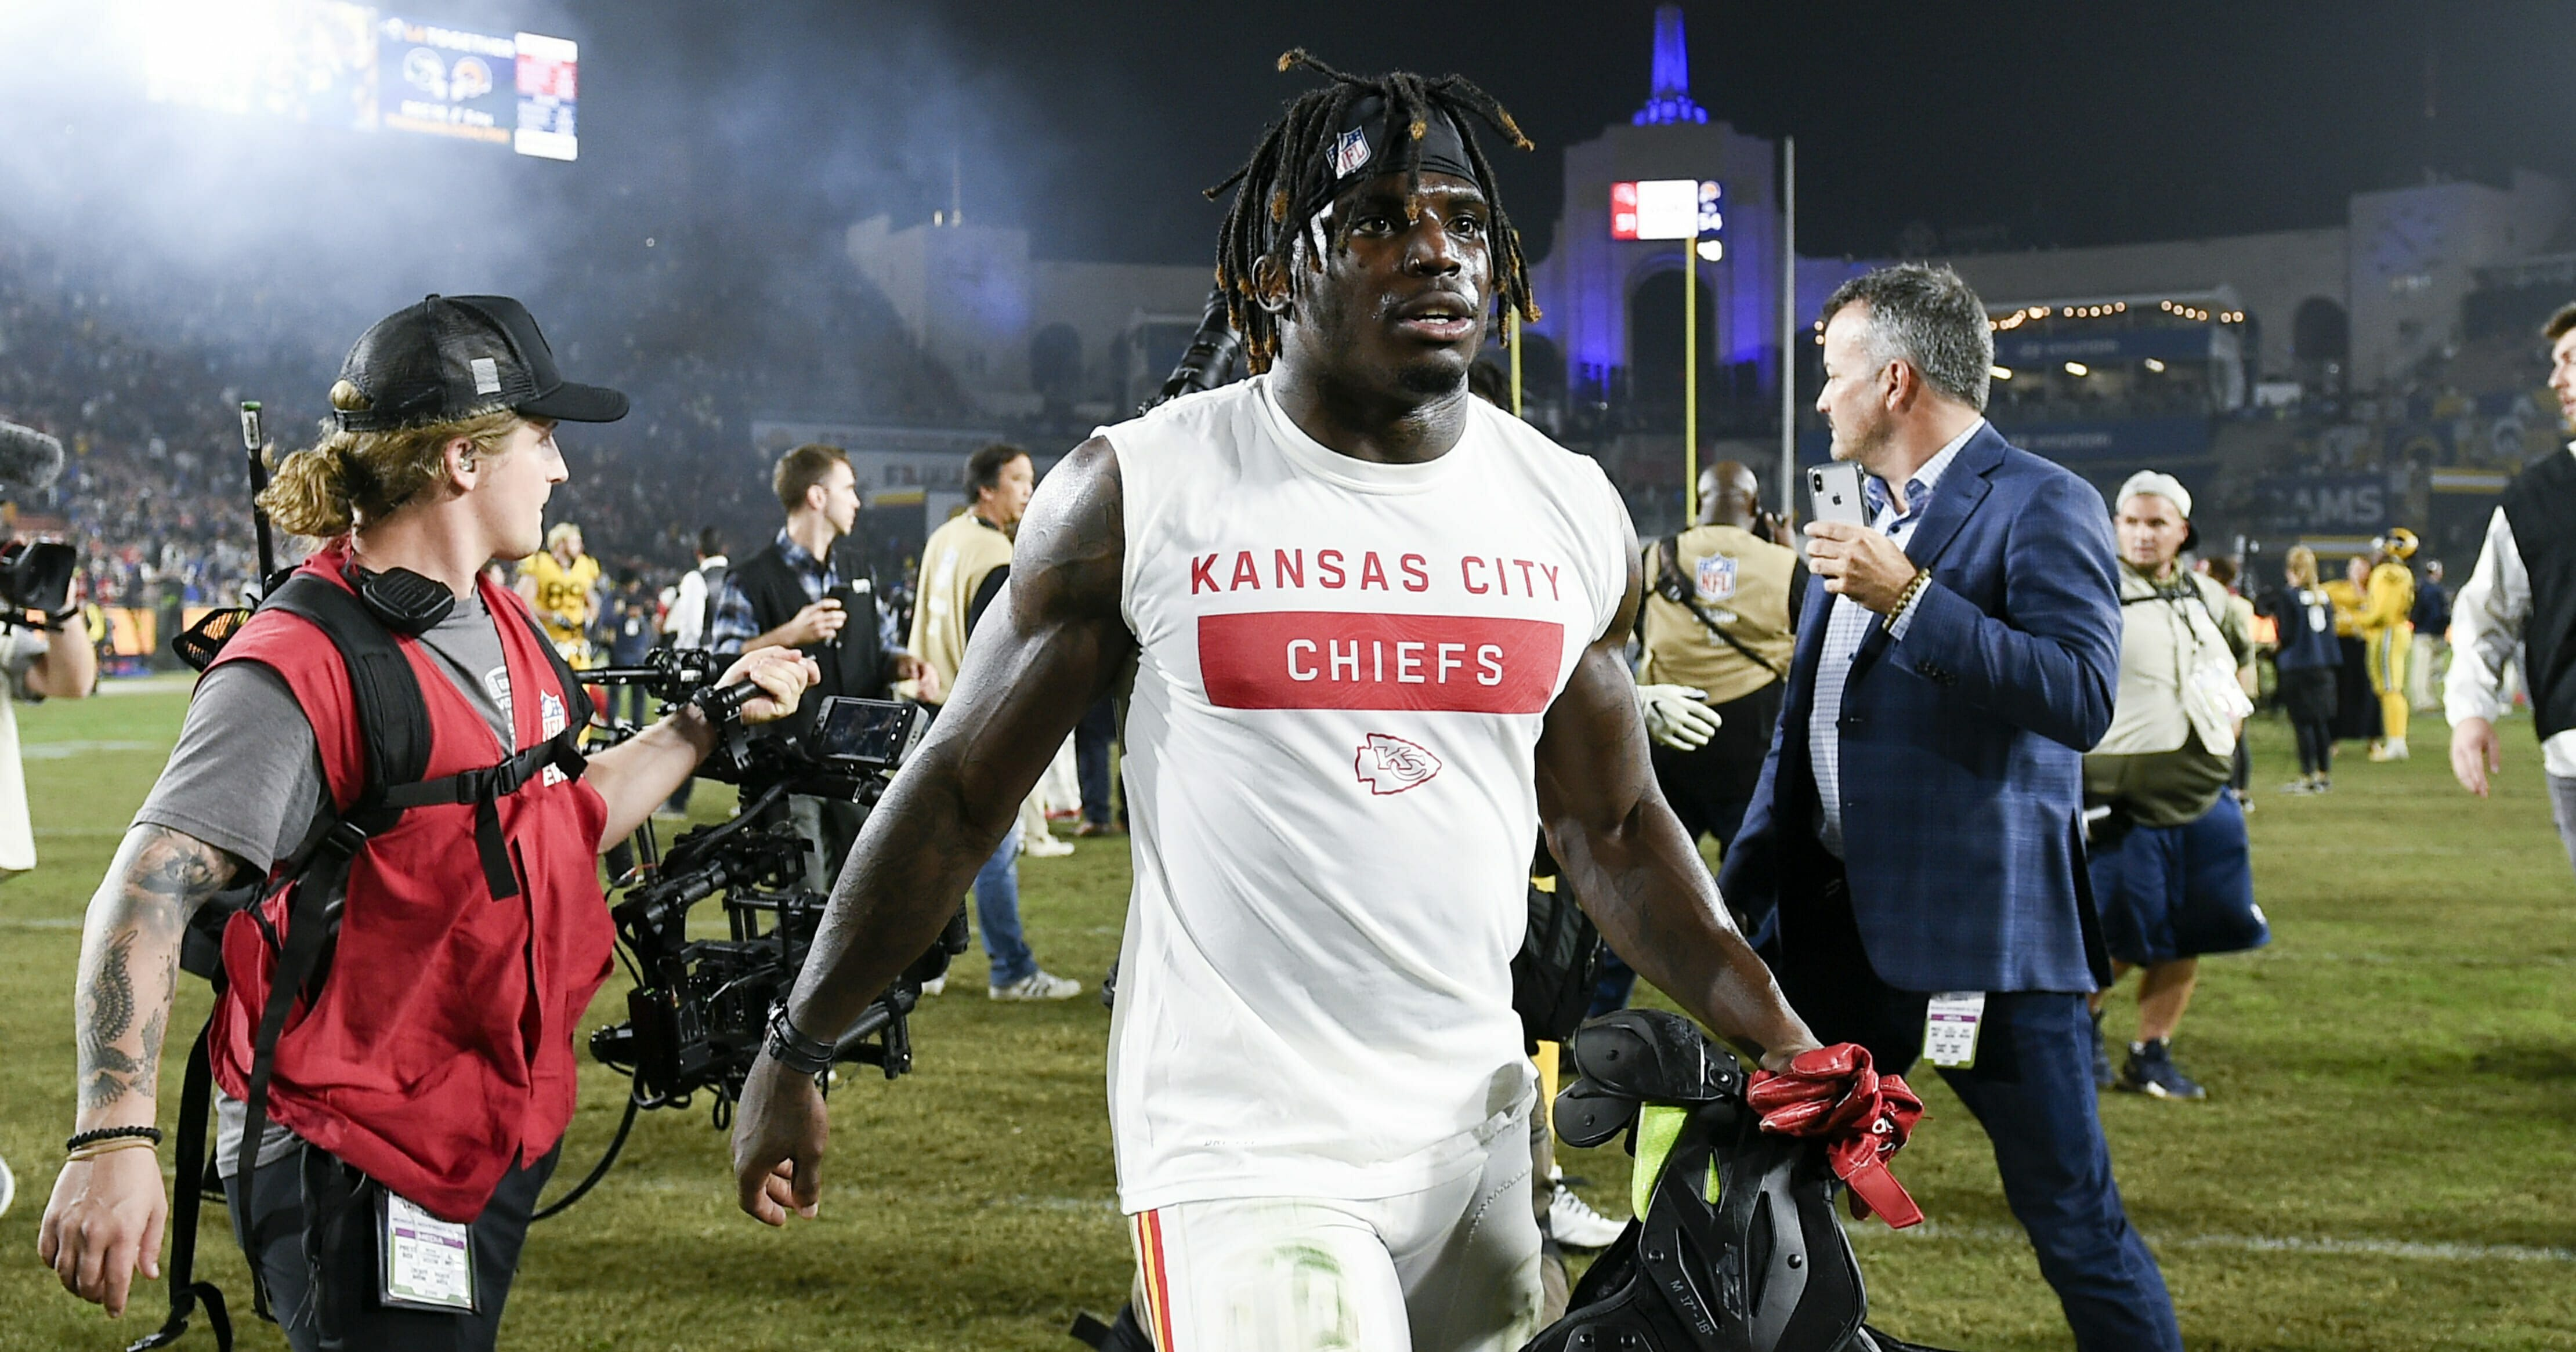 In this Nov. 19, 2018, file photo, Kansas City Chiefs wide receiver Tyreek Hill walks off the field after an NFL football game against the Los Angeles Rams, in Los Angeles.